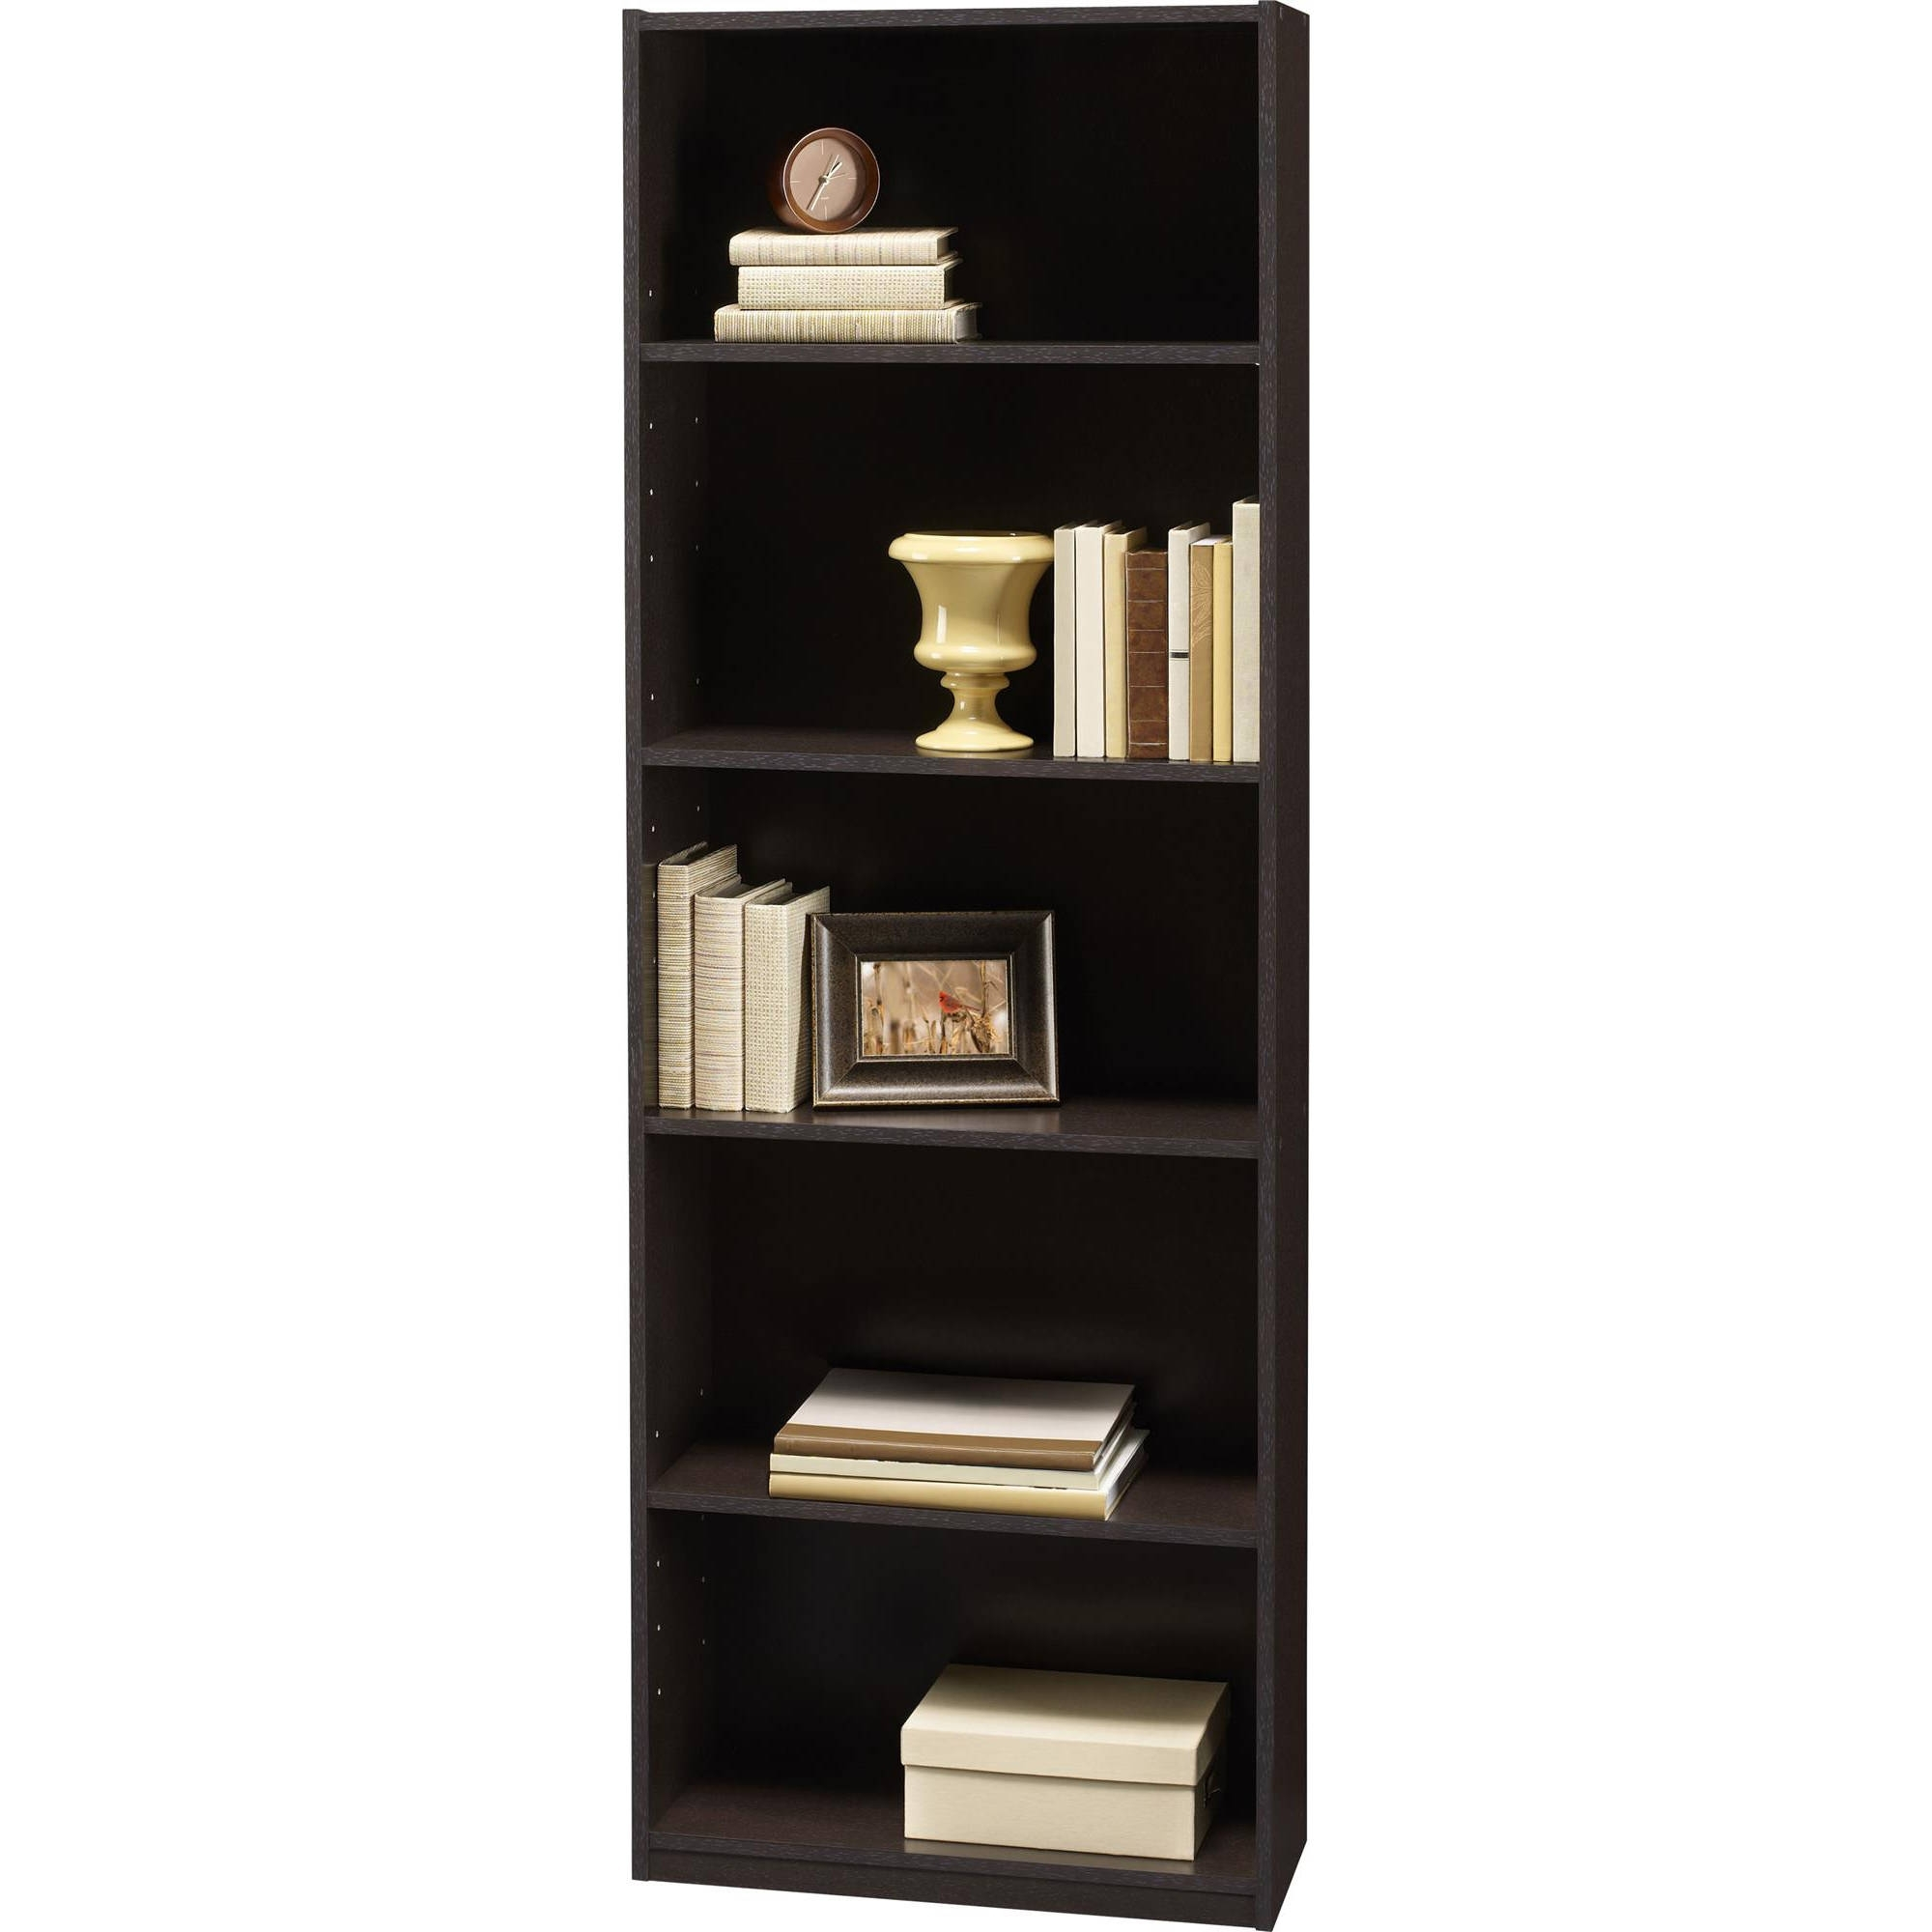 Ameriwood 3 Shelf And 5 Shelf Bookcases (mix And Match) – Walmart Pertaining To Most Popular Black Bookcases Walmart (View 6 of 15)